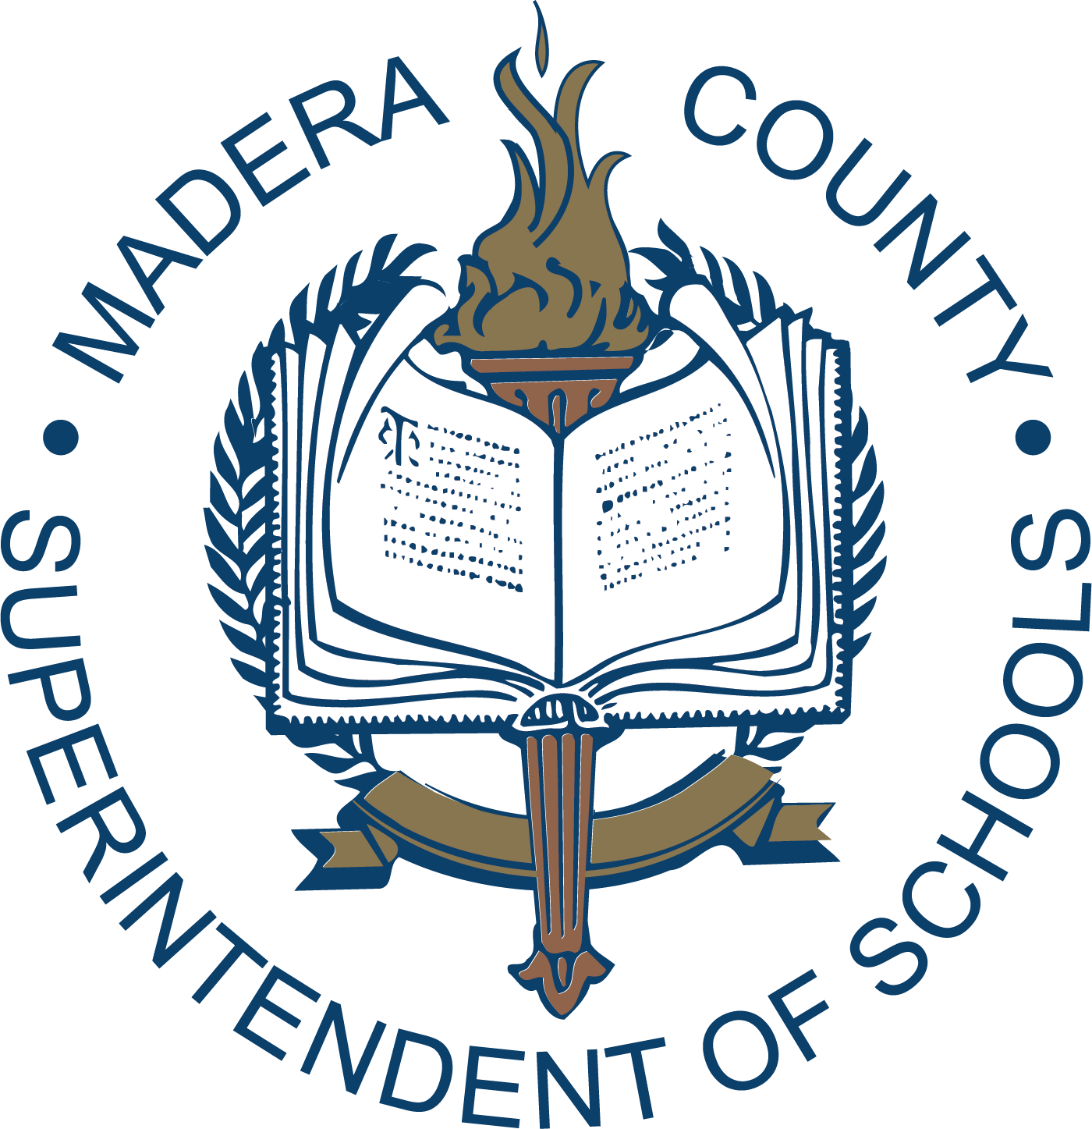 Madera County Superintendent of Schools Logo